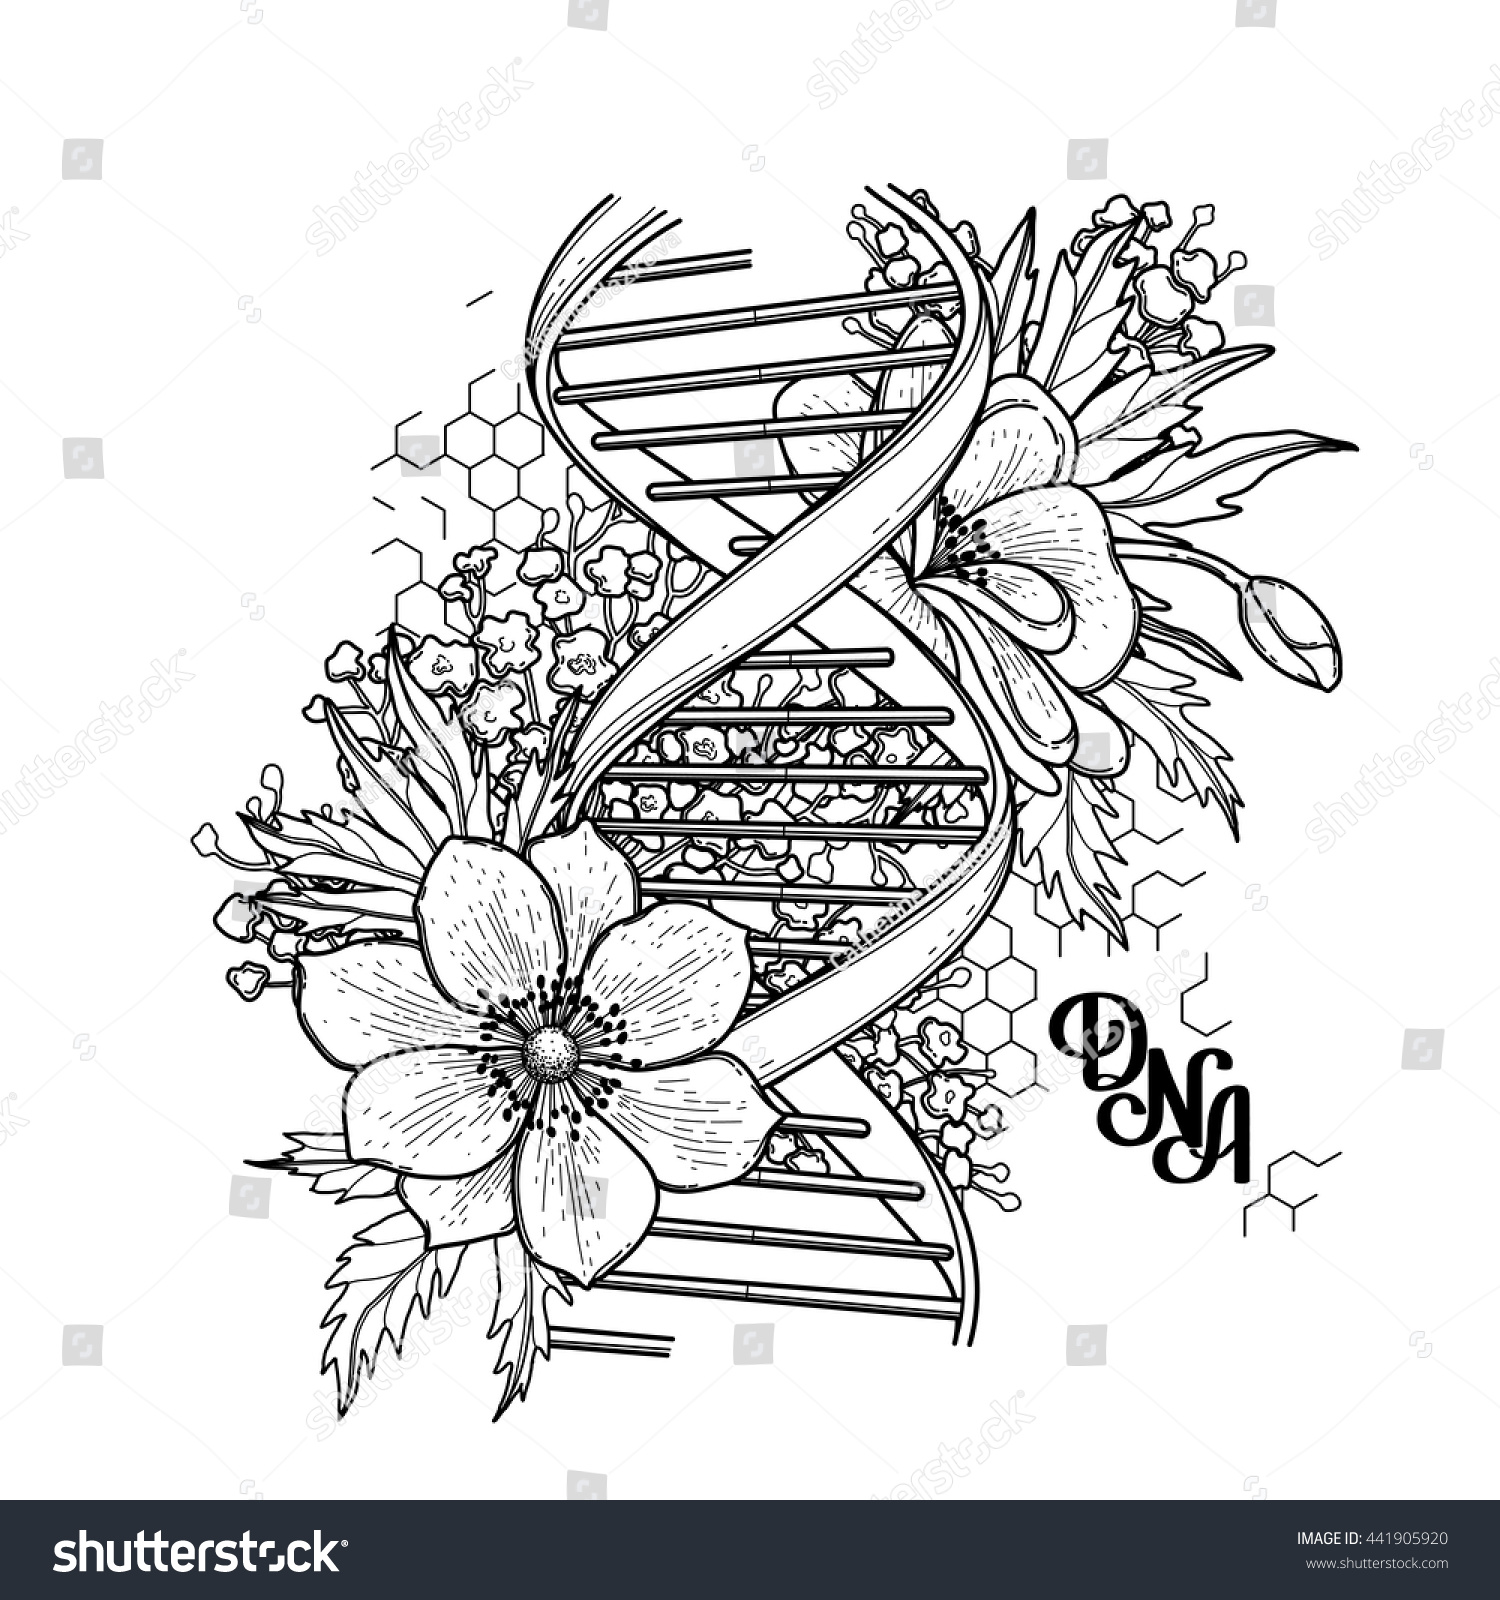 Graphic DNA structure with floral design isolated on white background.  Vector elements for scientific and